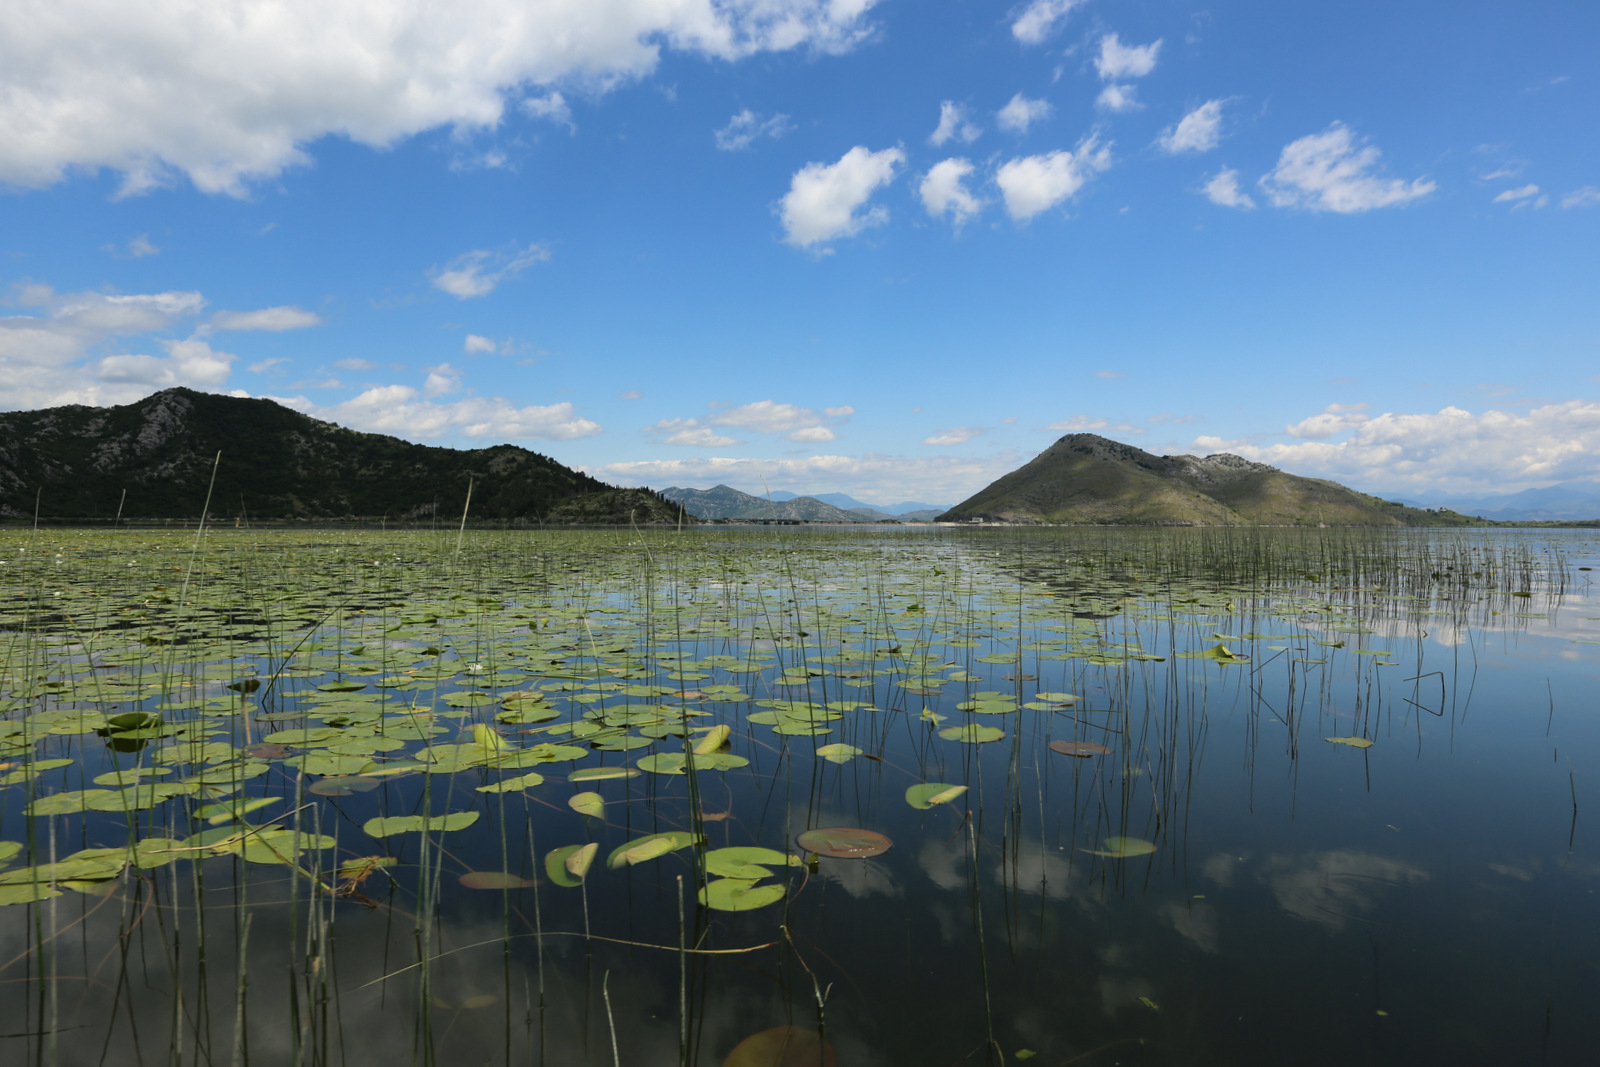 Boat tour on Skadar lake